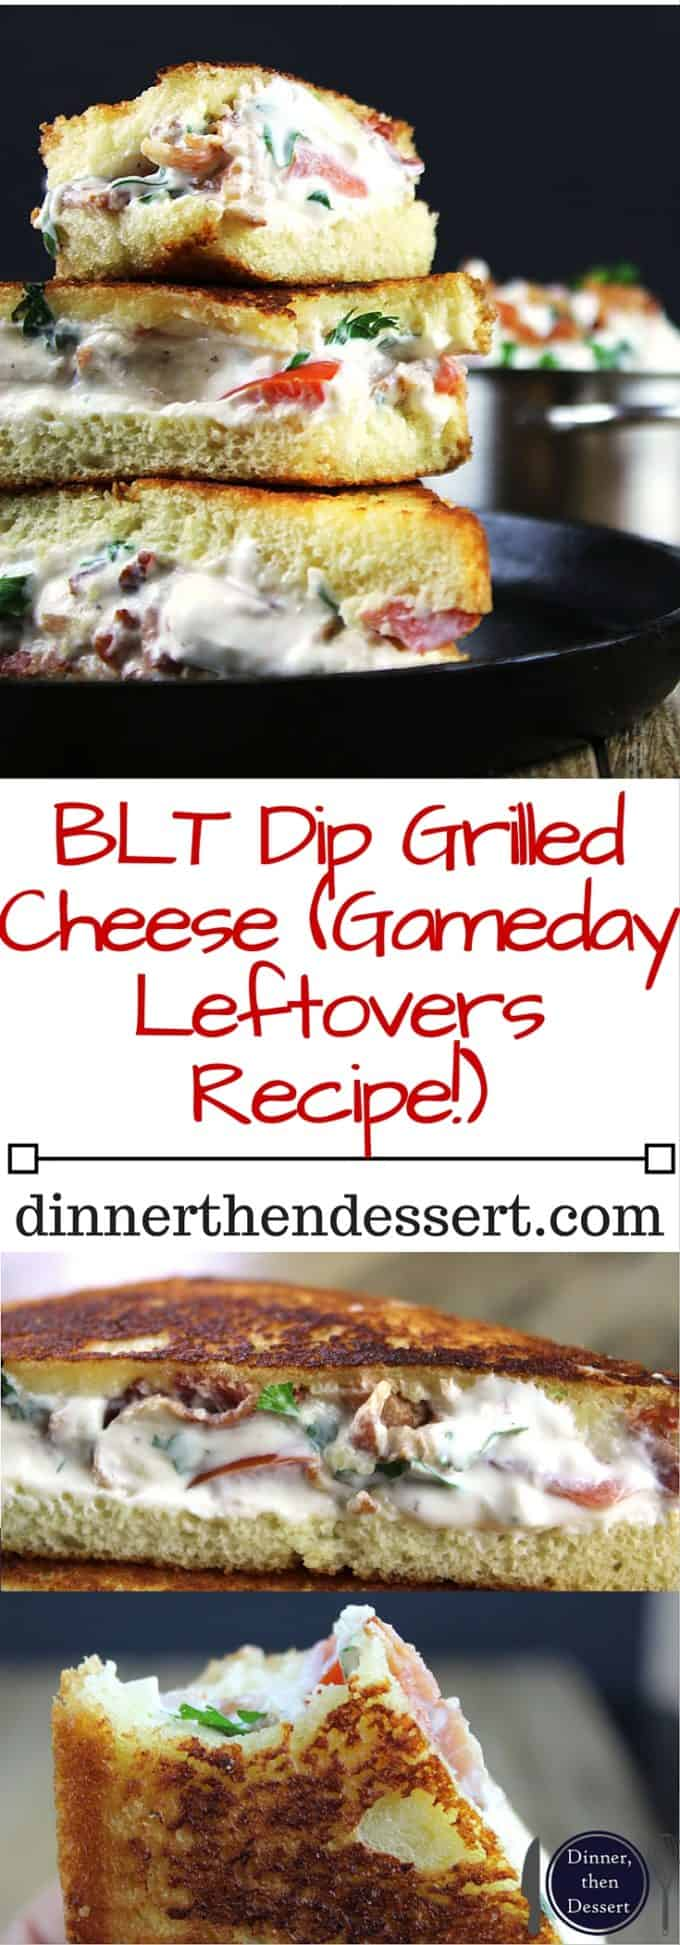 Creamy, tangy and full of bacon, this BLT Dip Grilled Cheese Sandwich will be your new favorite! Made with a crispy buttery buttermilk bread exterior and a melted bacon filling, this is an easy Round Two recipe for BLT Dip!